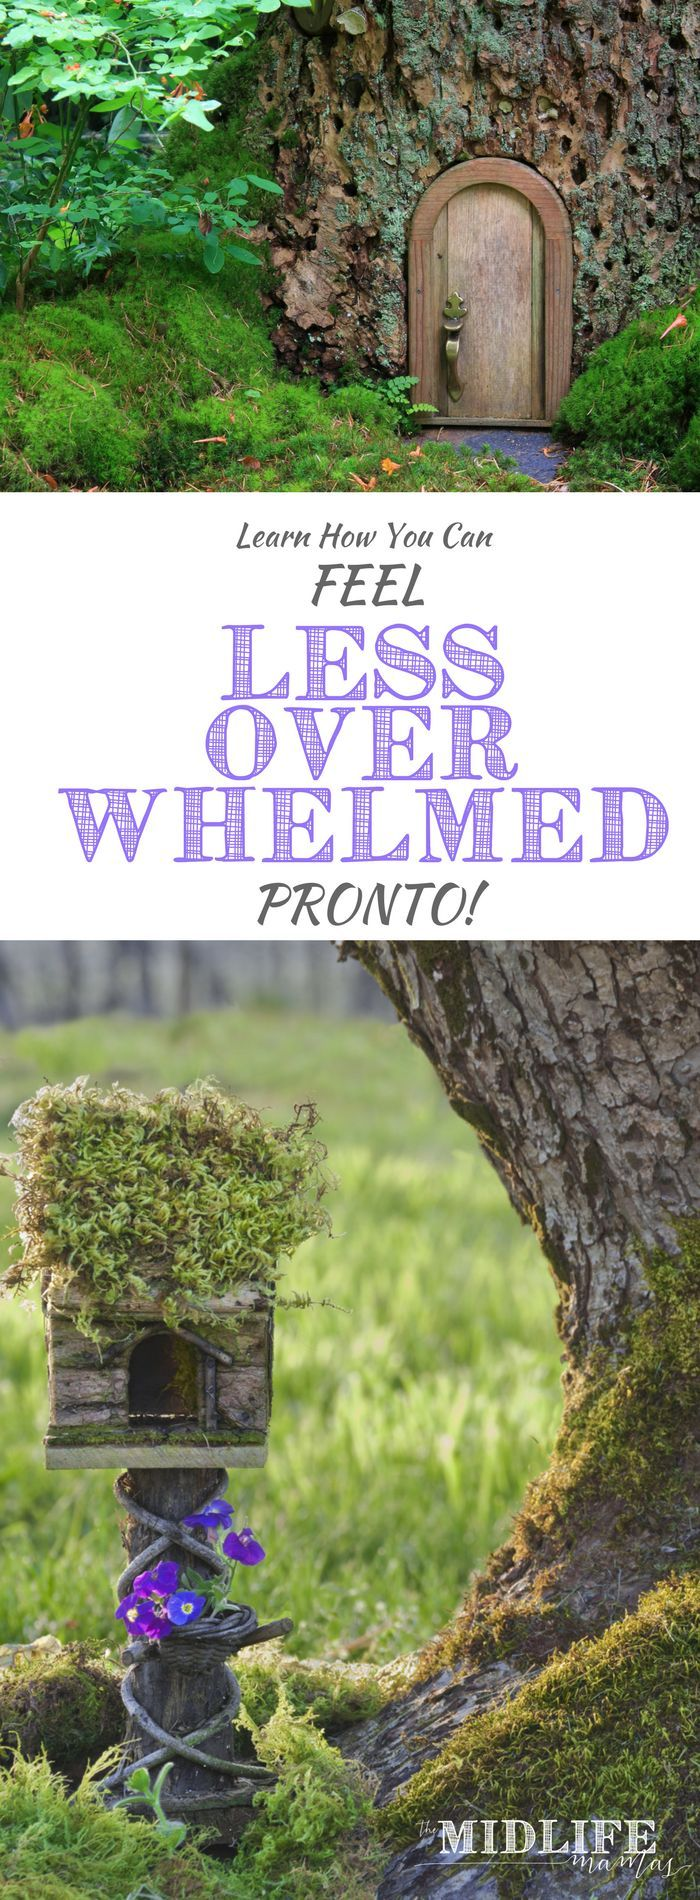 Are you looking for tips or wondering what to do when you are feeling overwhelmed by mom life? This one thing will give you all the encouragement and inspiration to turn your own overwhelmed feelings around! PRONTO! #overwhelmed #feelingoverwhelmedwww.themidifemamas.com